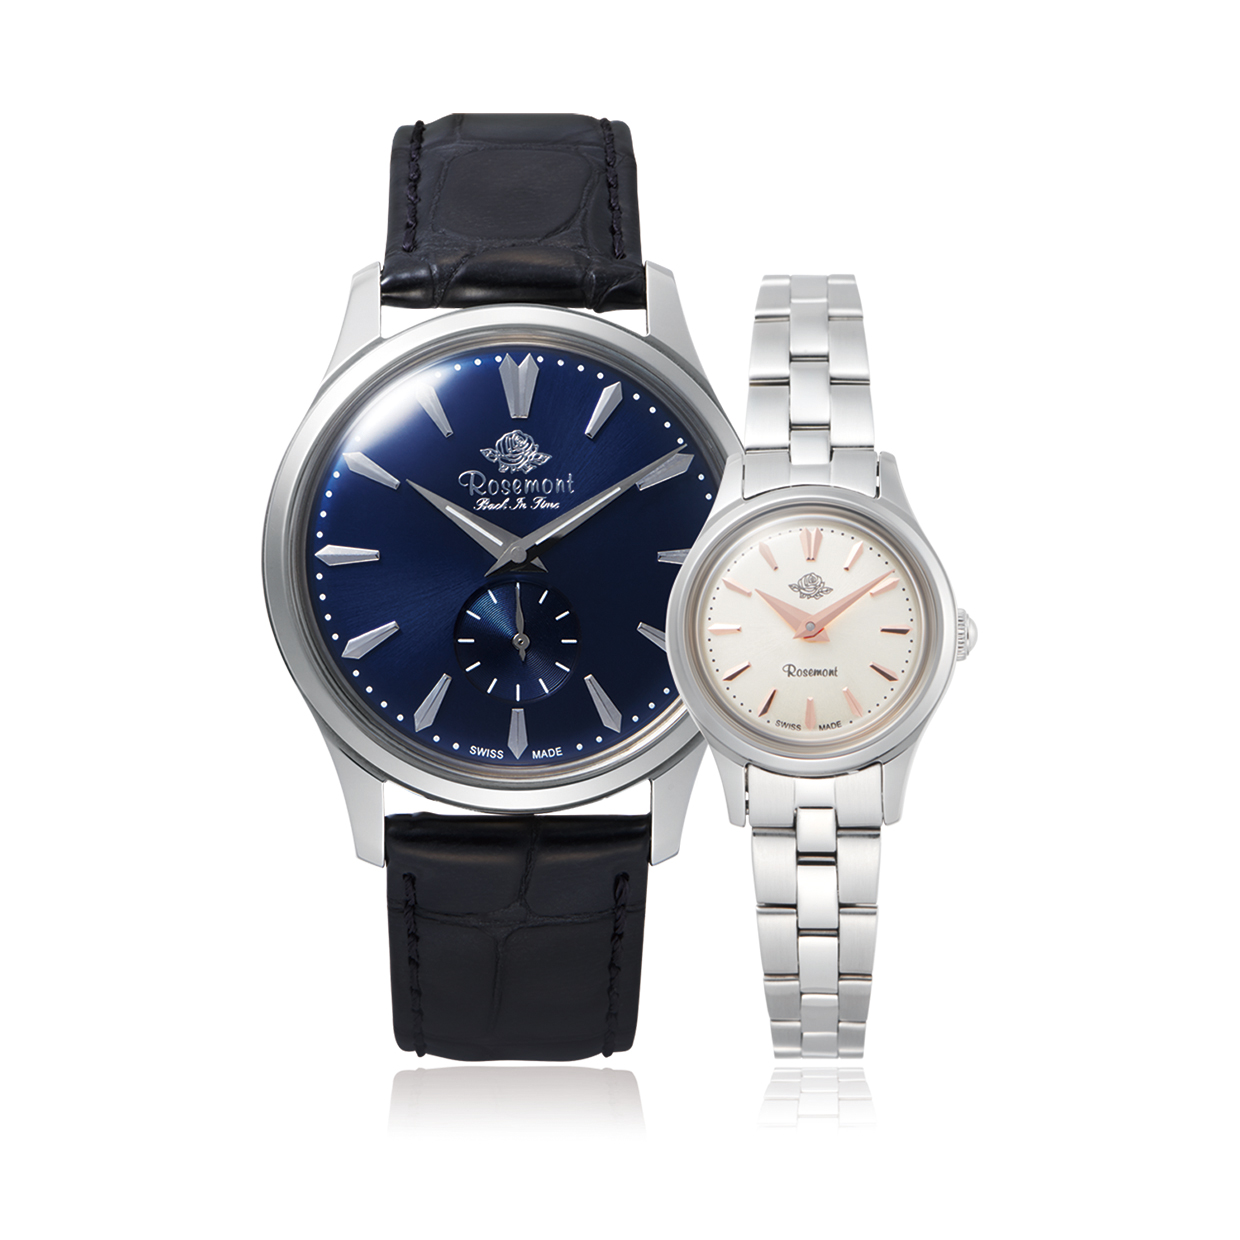 Couple Watches to Make Your Time Together Truly Special